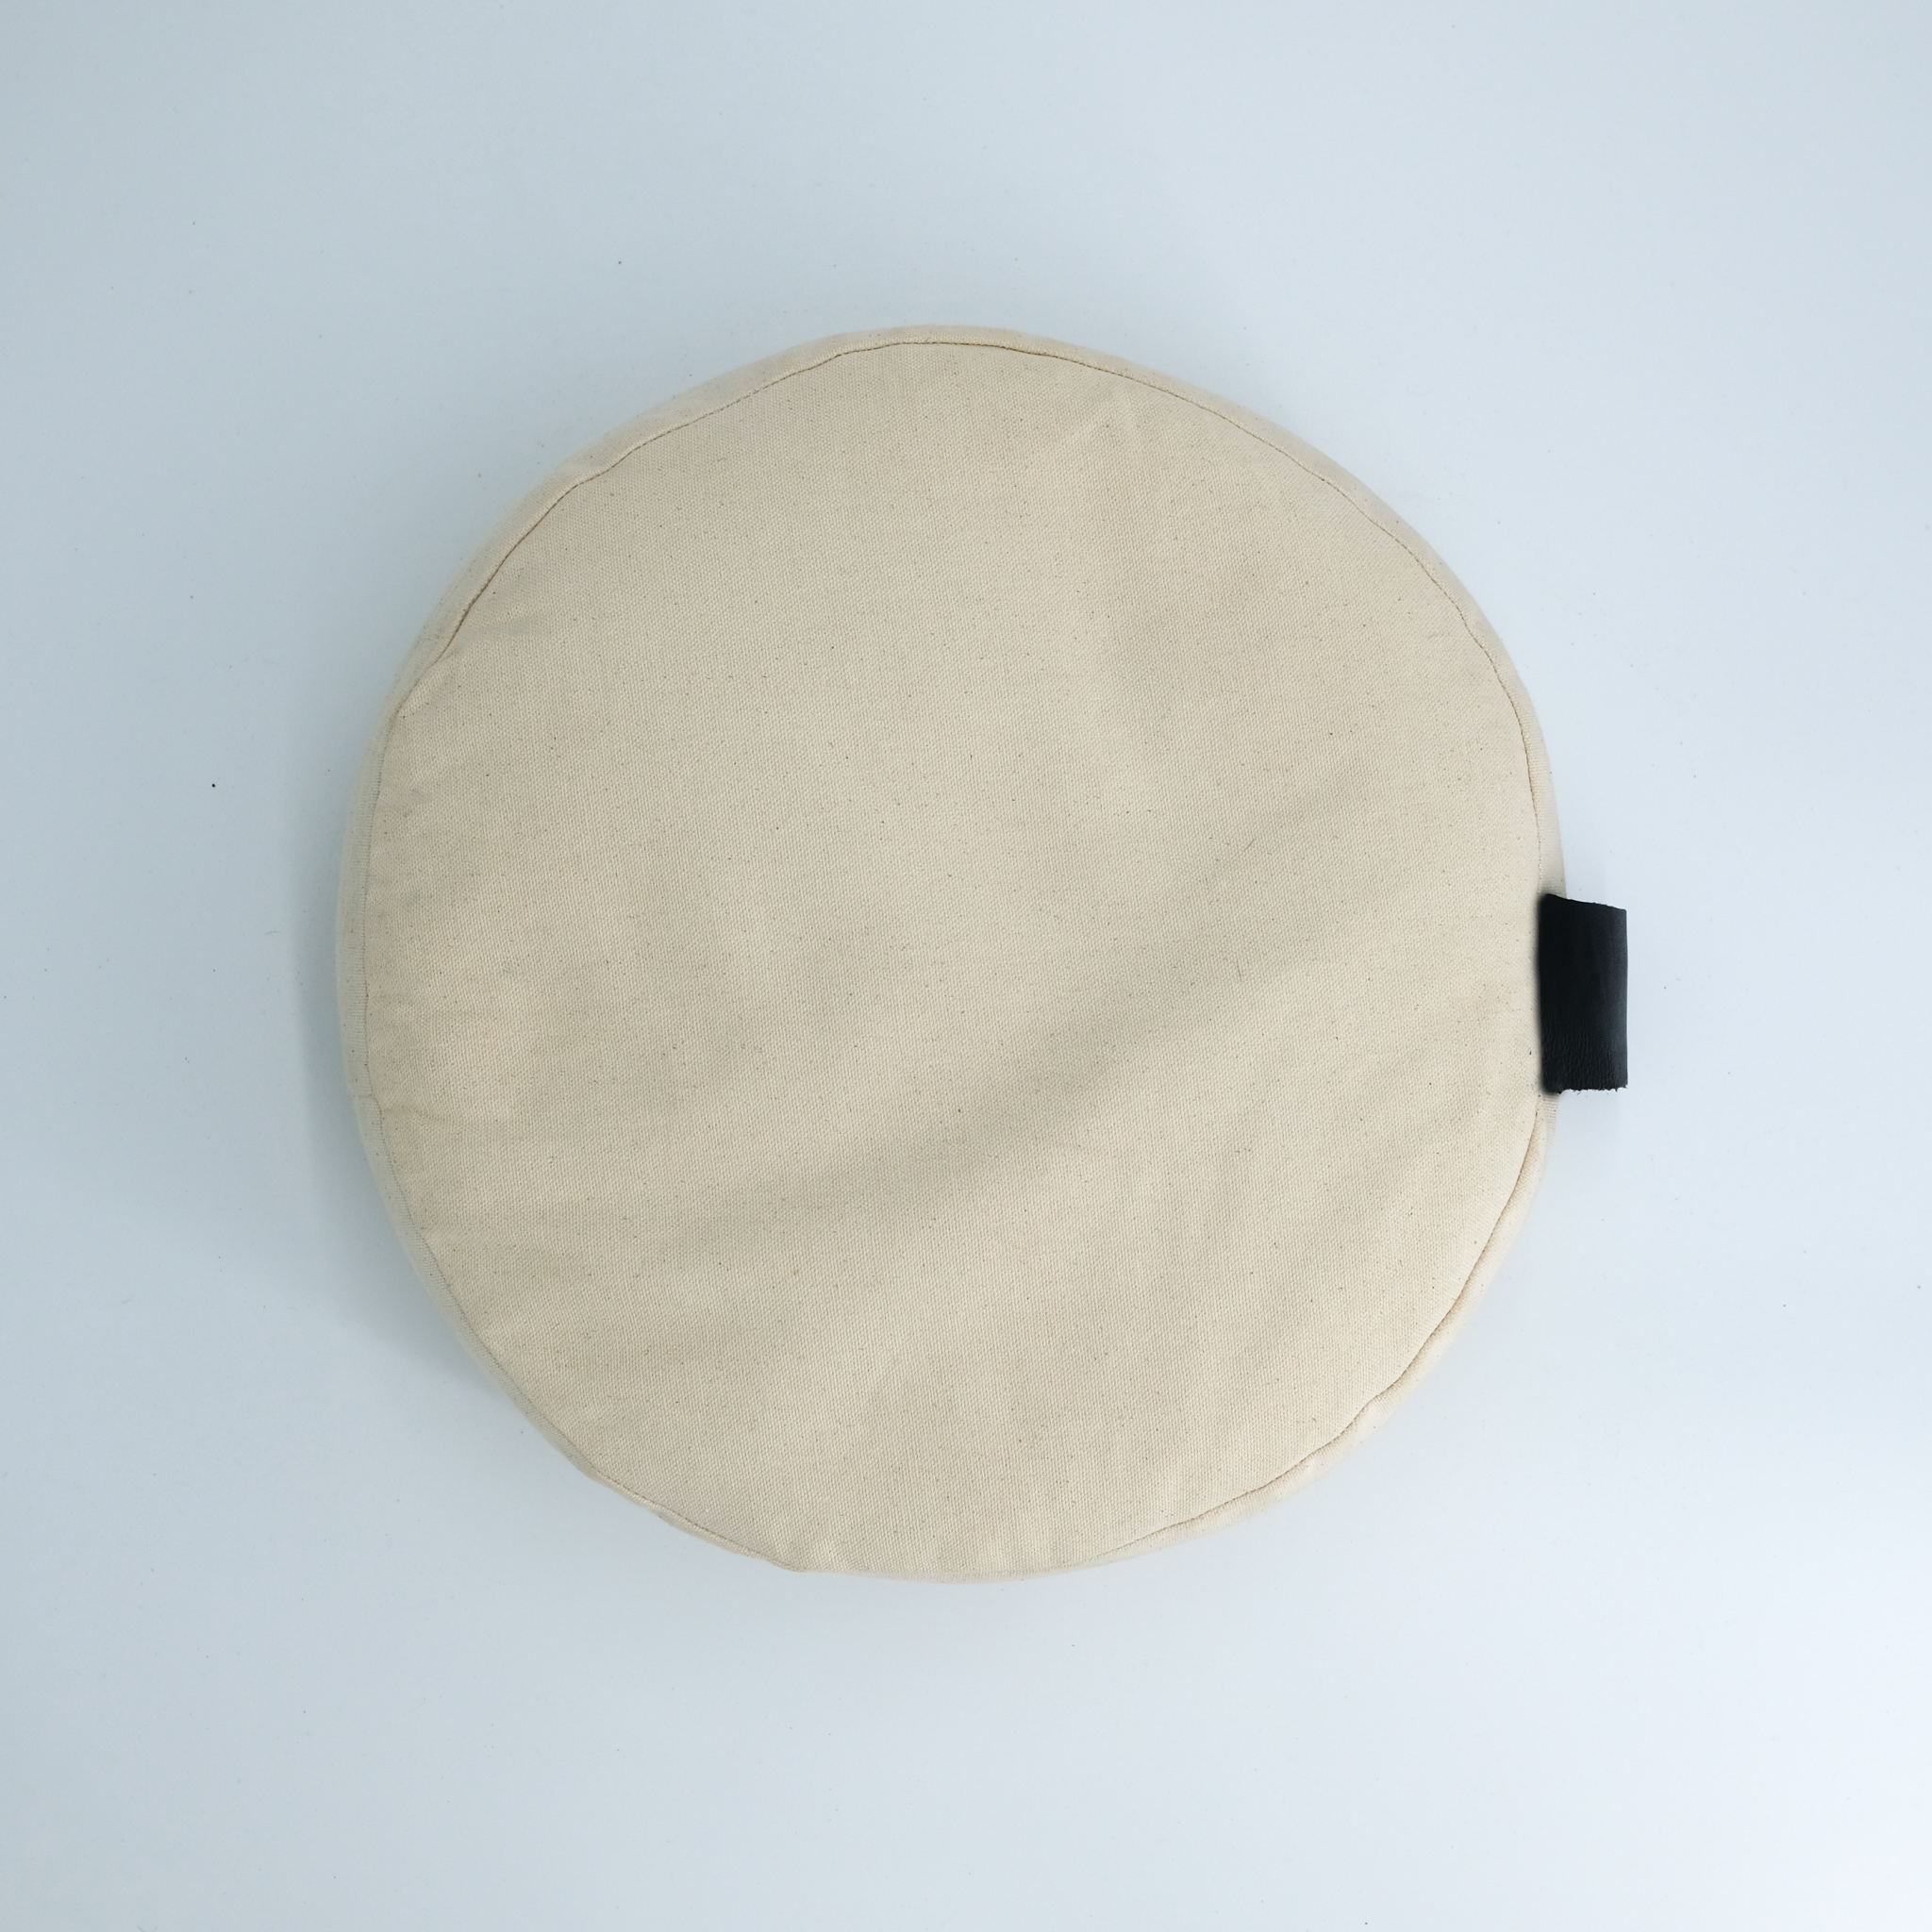 meditation cushion naturally dyed sustainable organic cotton black leather handle top view